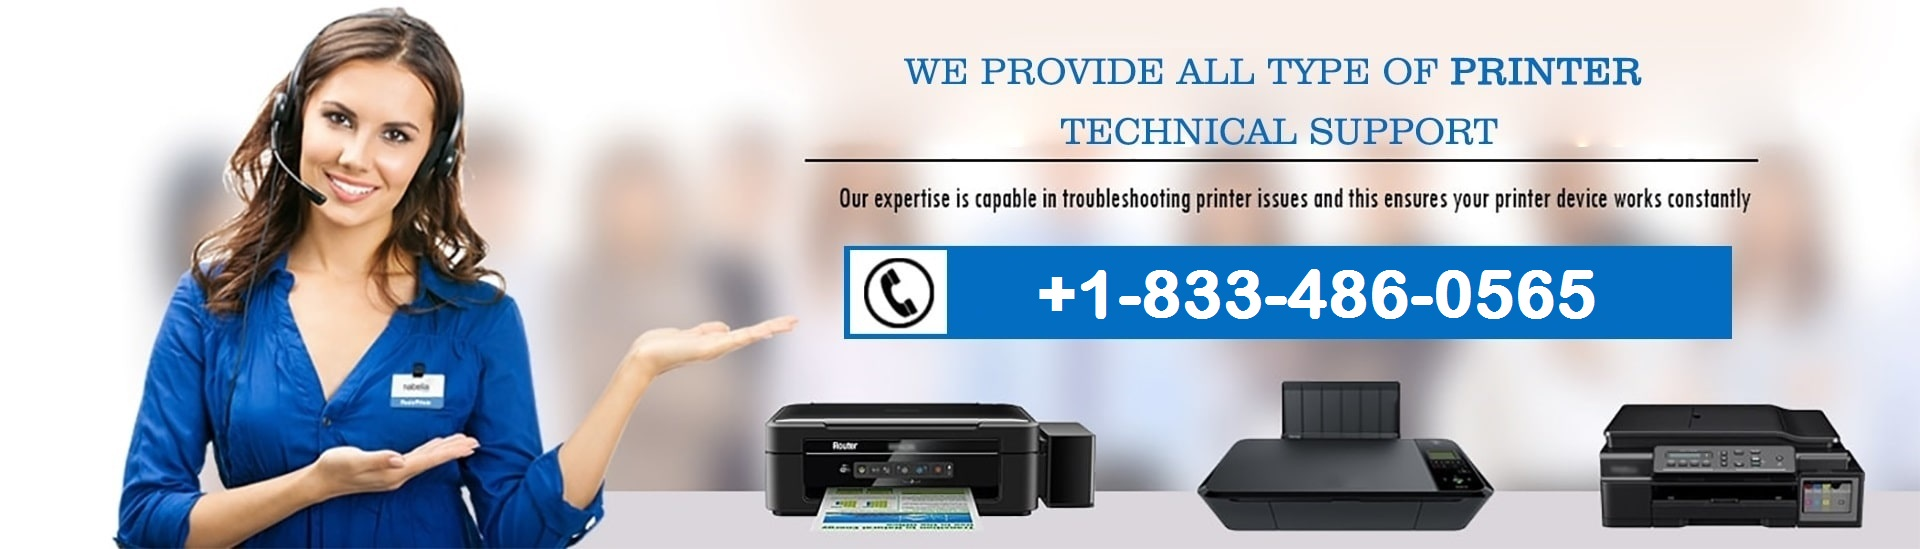 Printers IP Address, printer support number